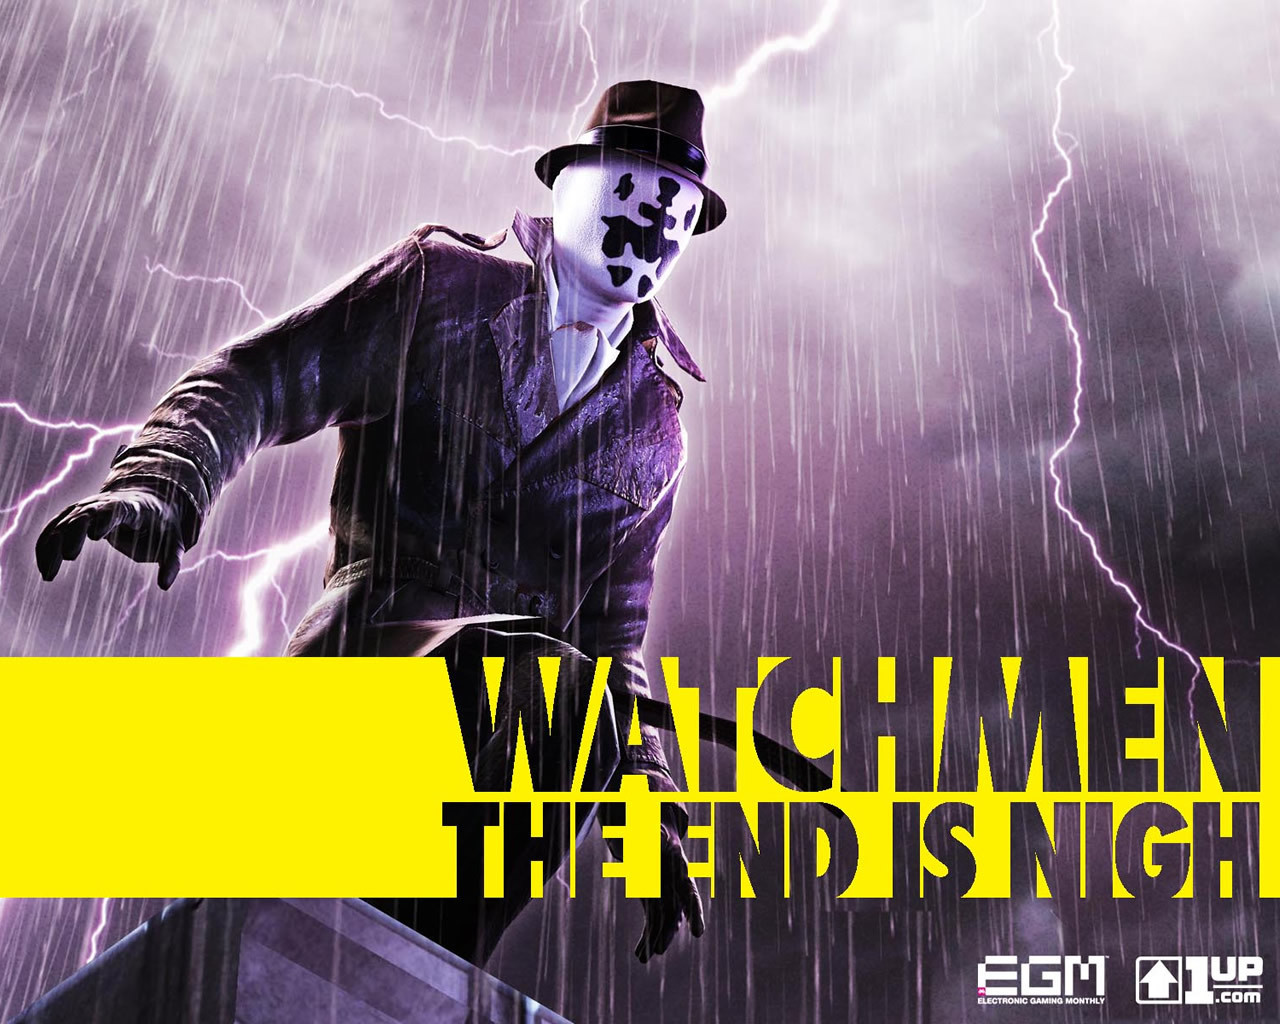 Watchmen video game - Watchmen Wallpaper (5287896) - Fanpop fanclubs